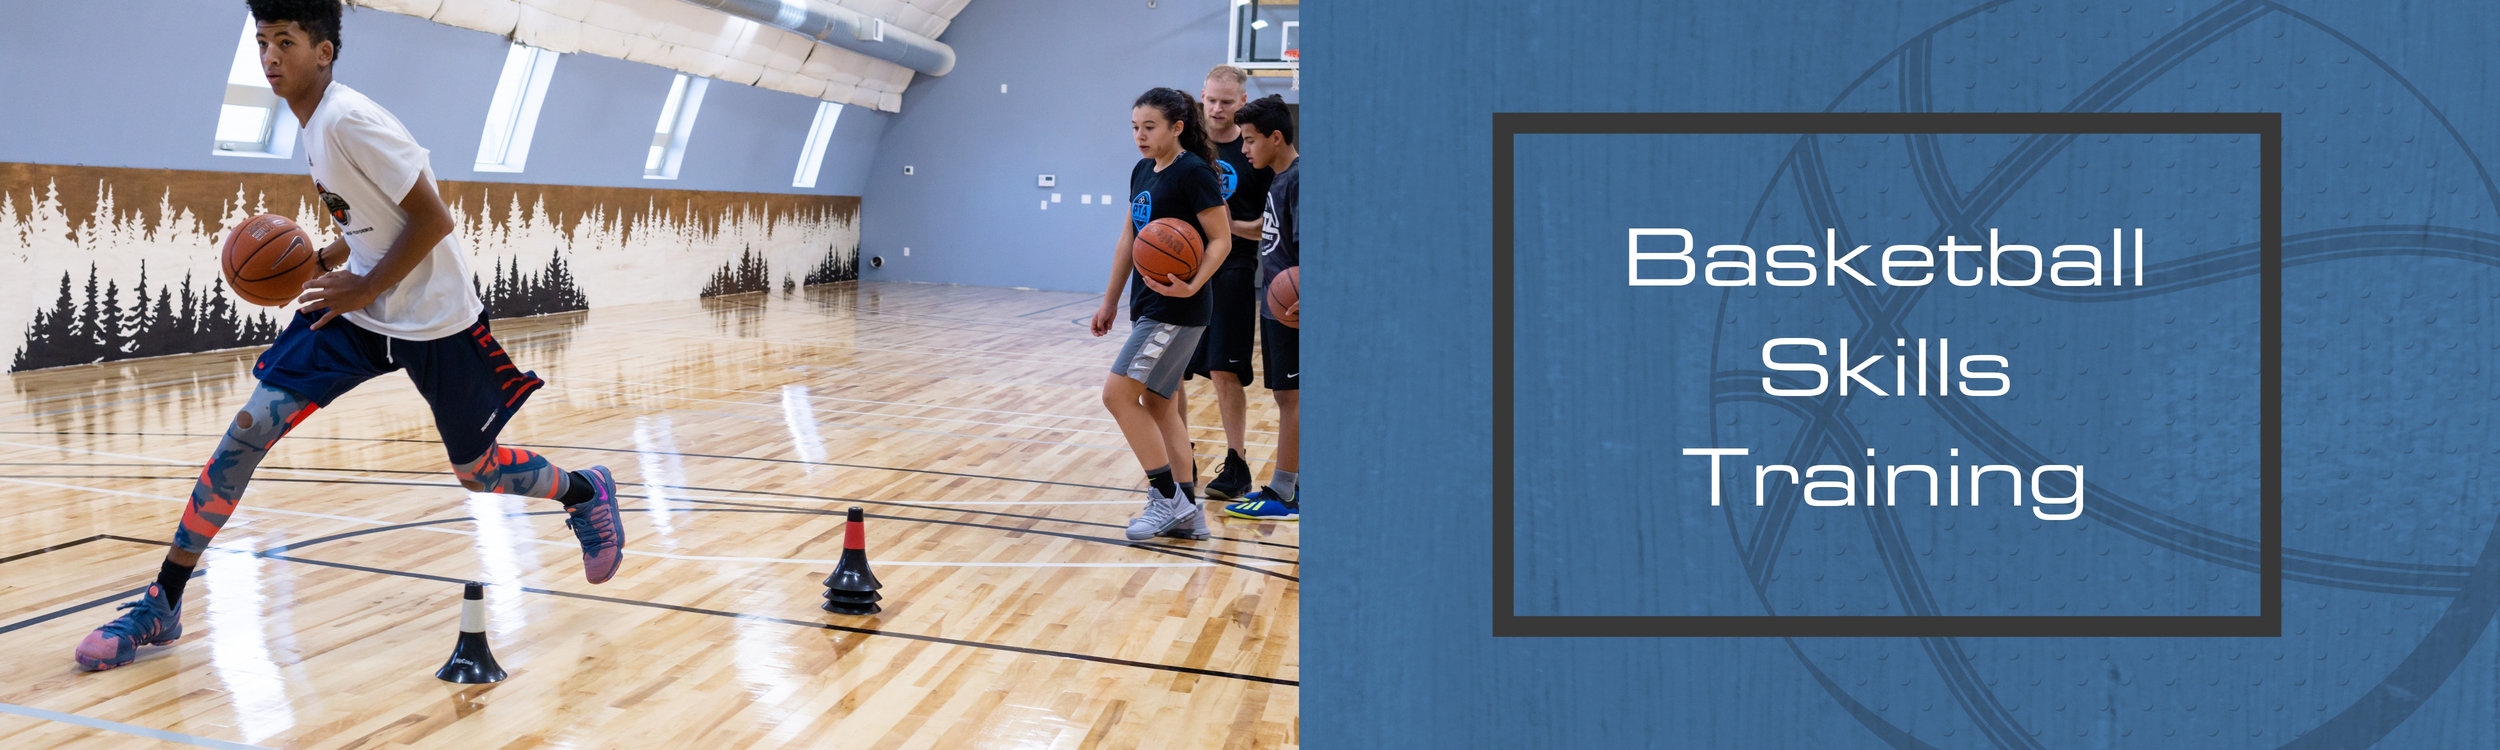 Website Pricing Banner- Basketball Skills Training.jpg